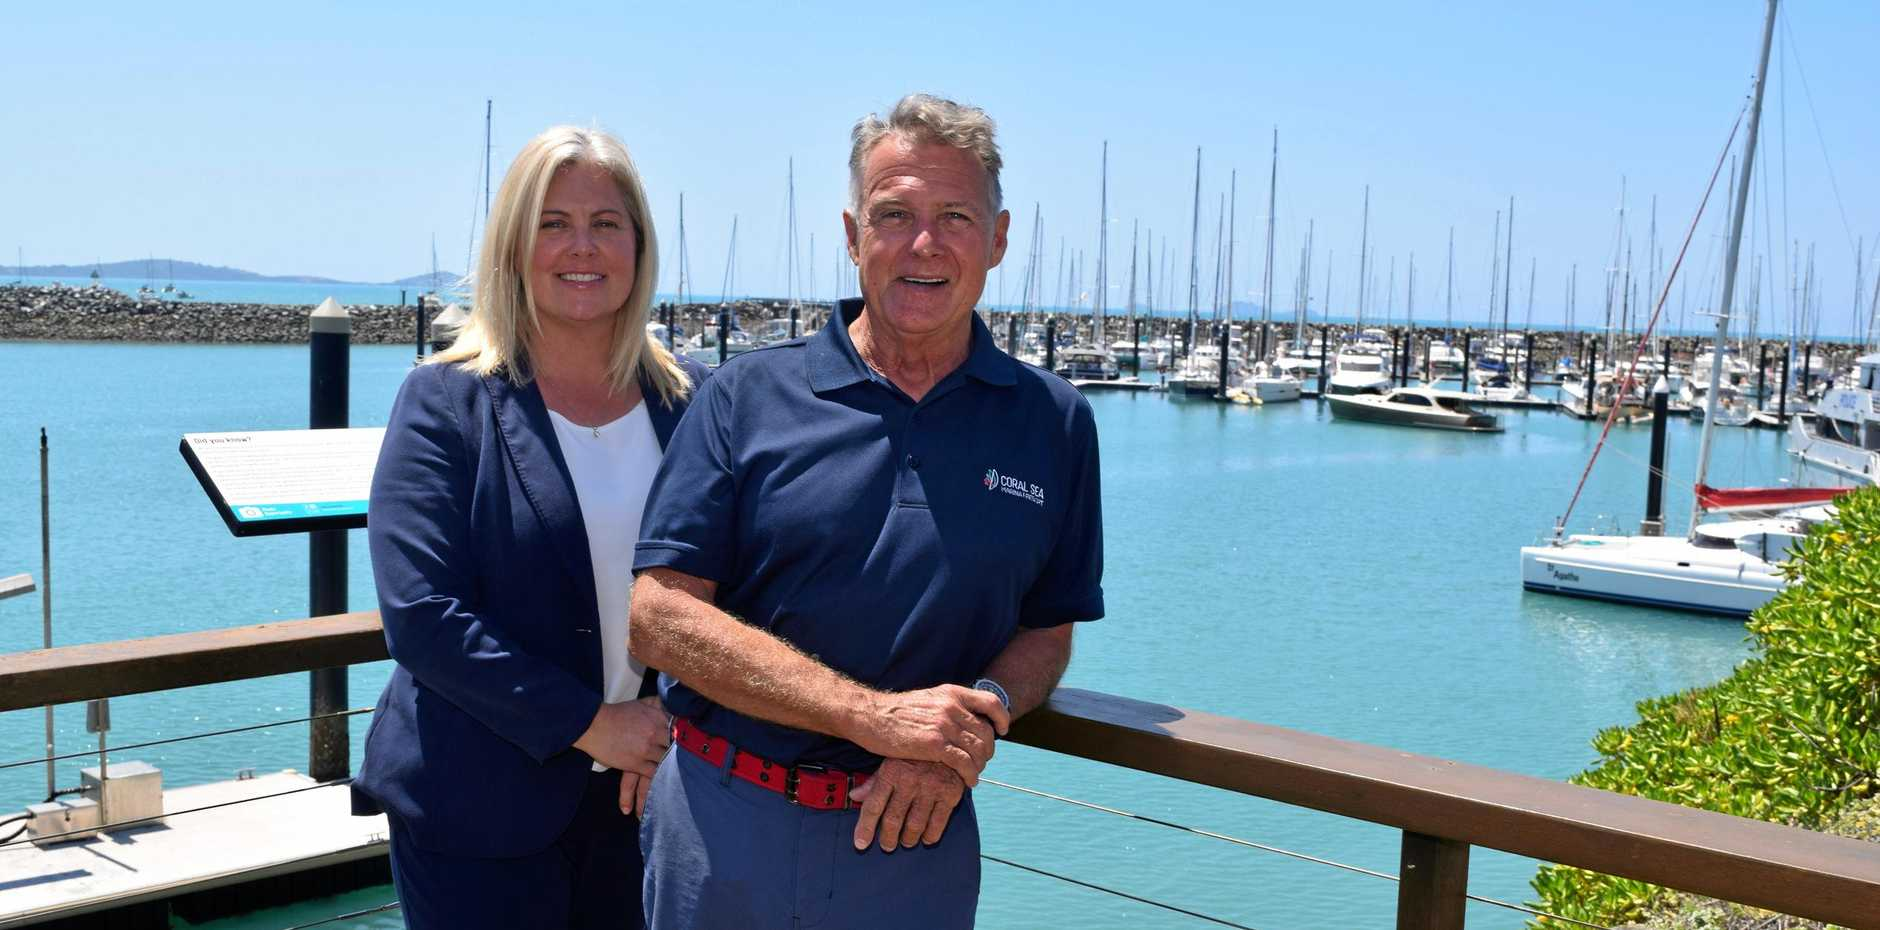 Coral Sea Marina Resort general manager Kate Purdie and owner Darrouzet are pleased with their Platinum 5 Gold Anchor accreditation under the Global Gold Anchor Scheme.